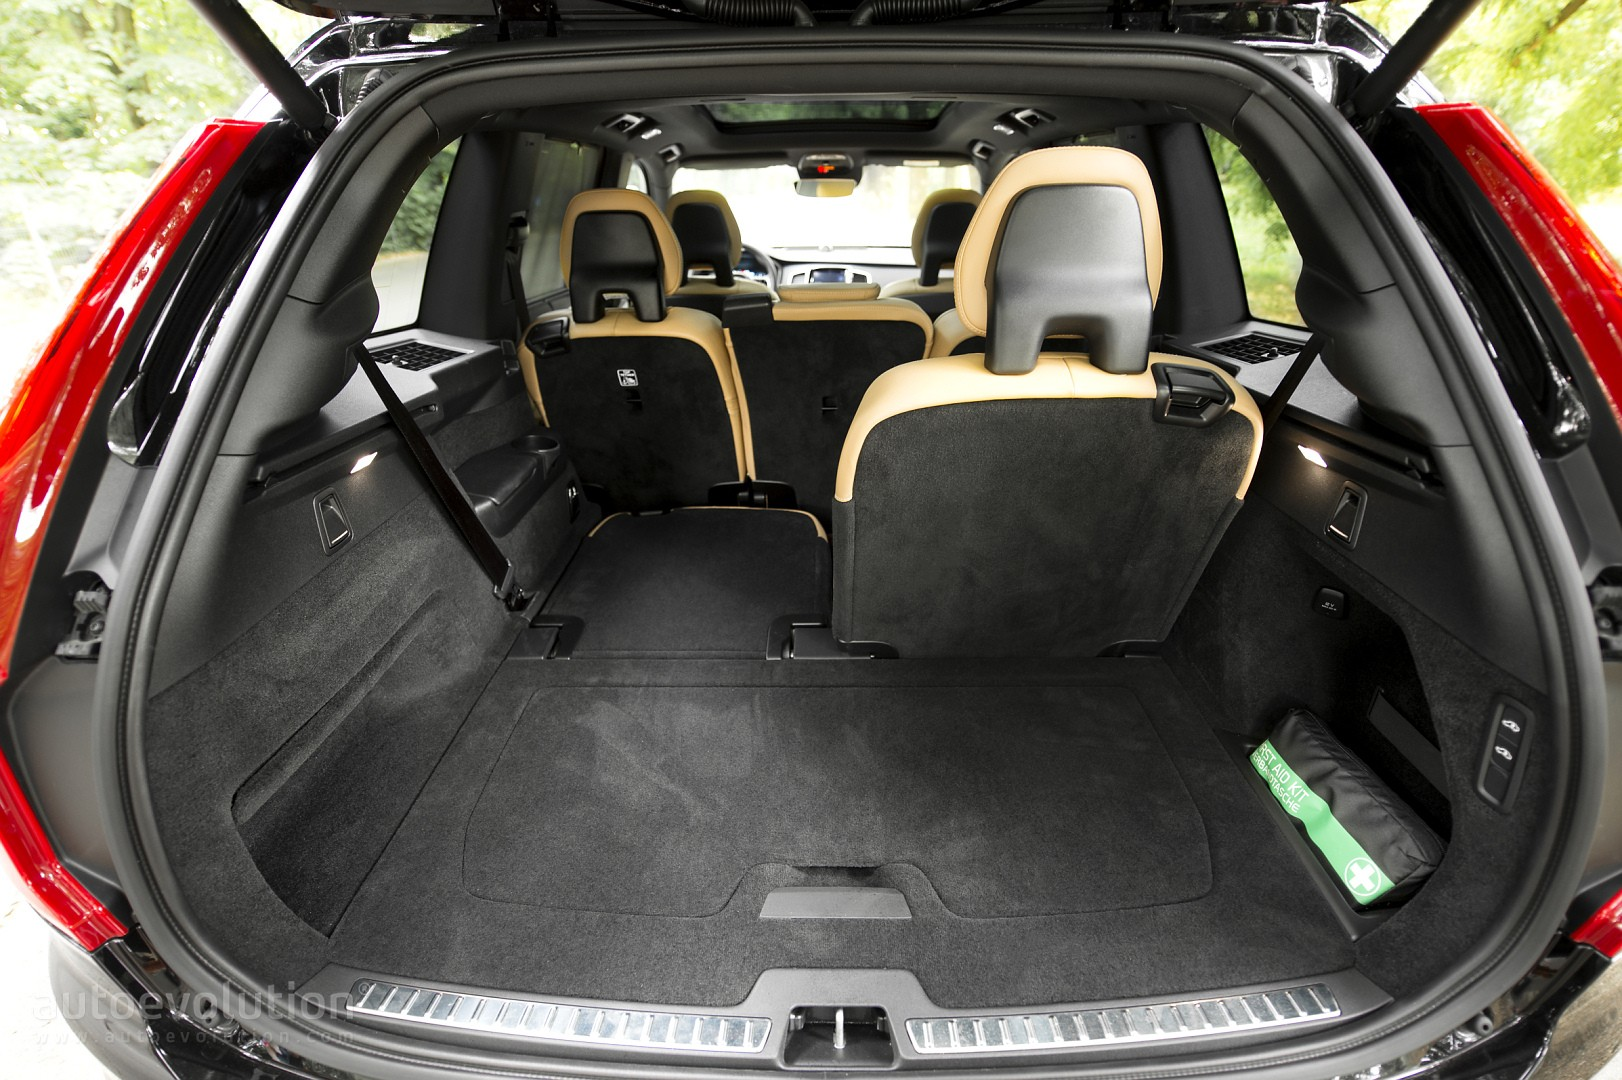 2016 Volvo Xc90 T6 Review Page 2 Autoevolution